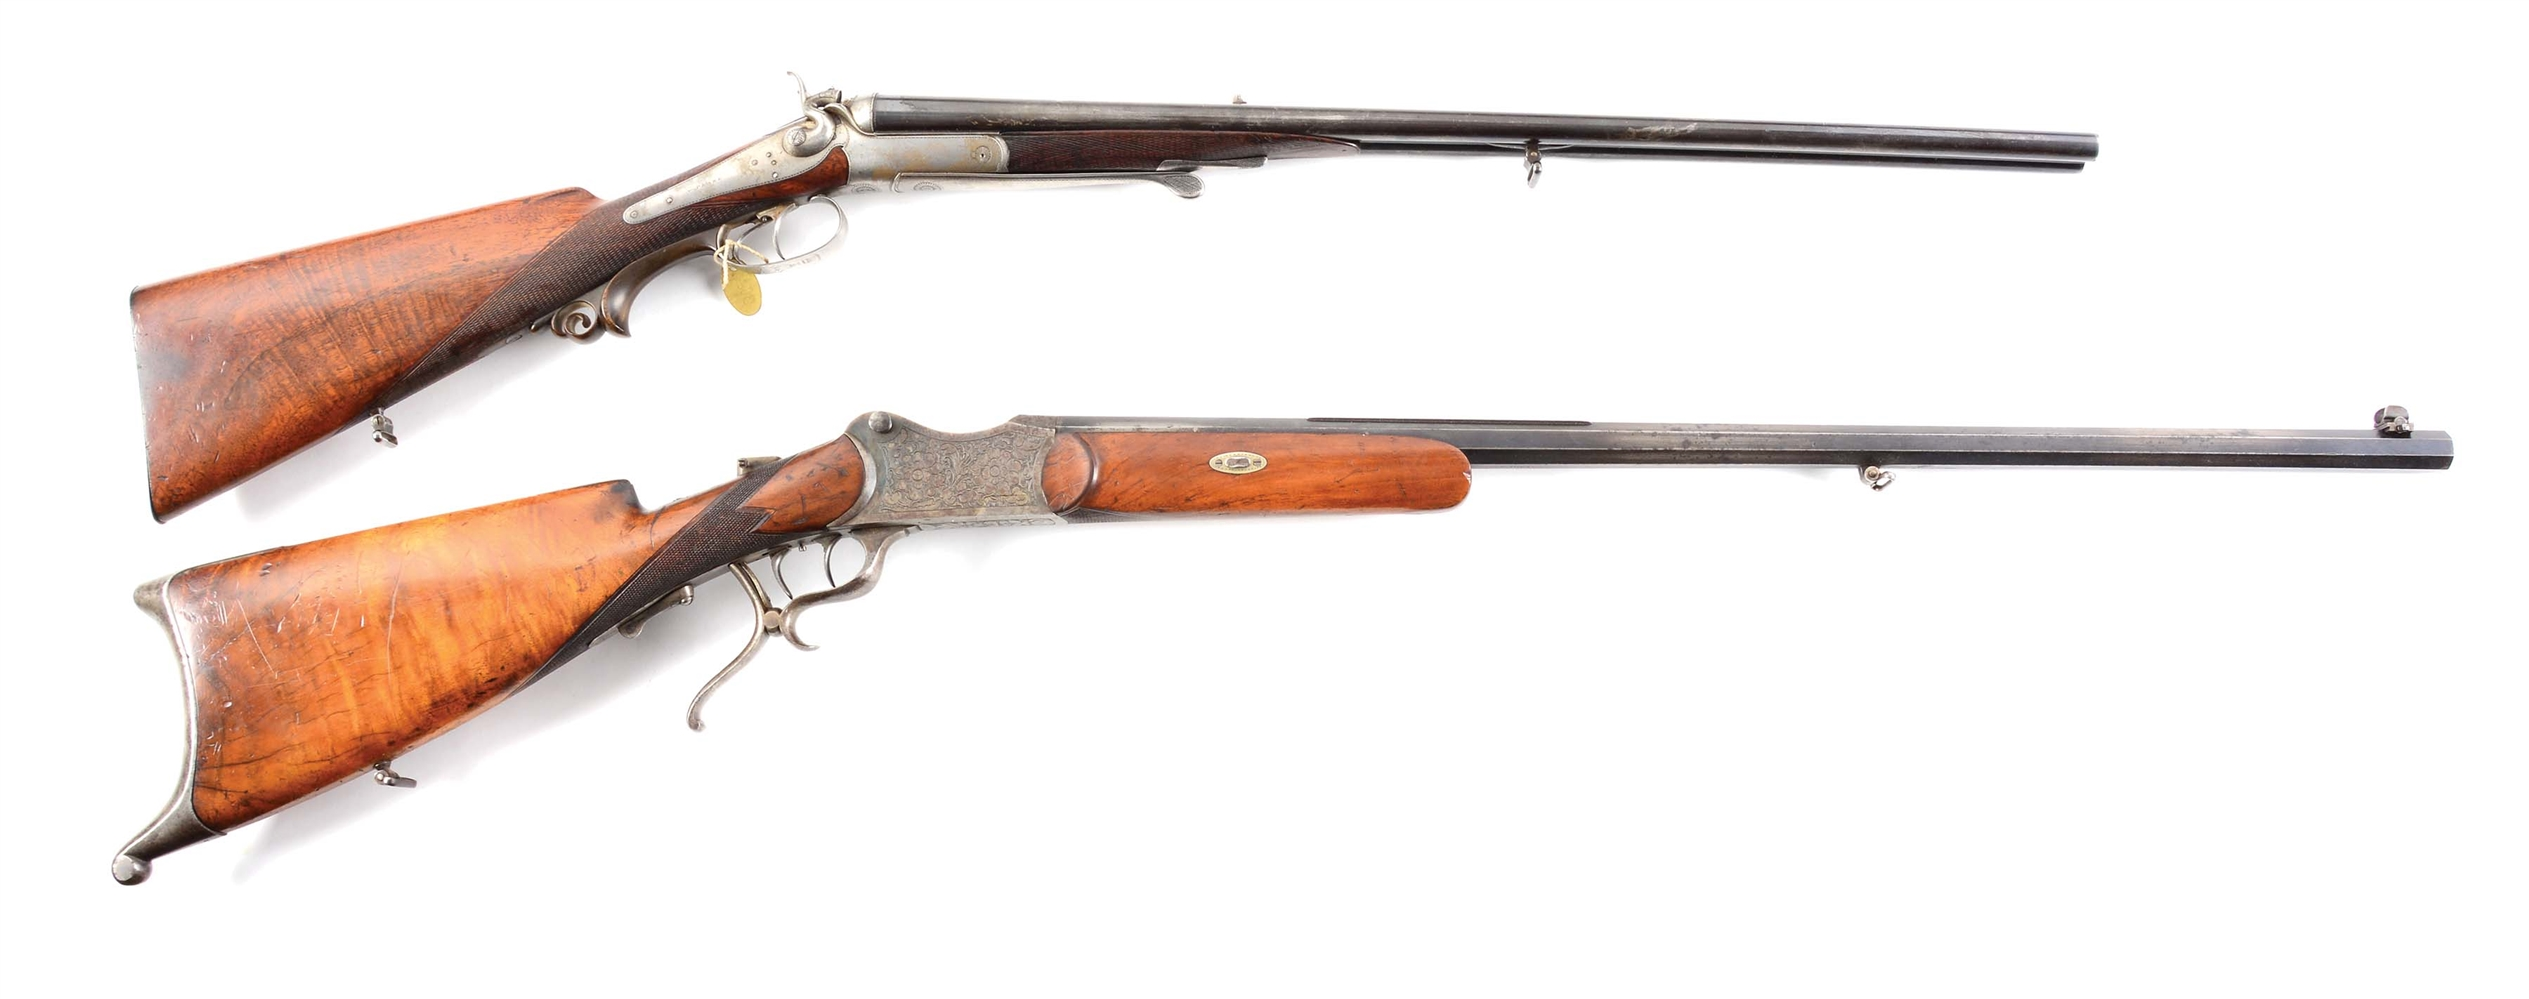 (A)LOT OF TWO: J. NOWOTNY .44 DOUBLE RIFLE AND AUSTRIAN SCHUETZEN 8.15 SINGLESHOT RIFLE